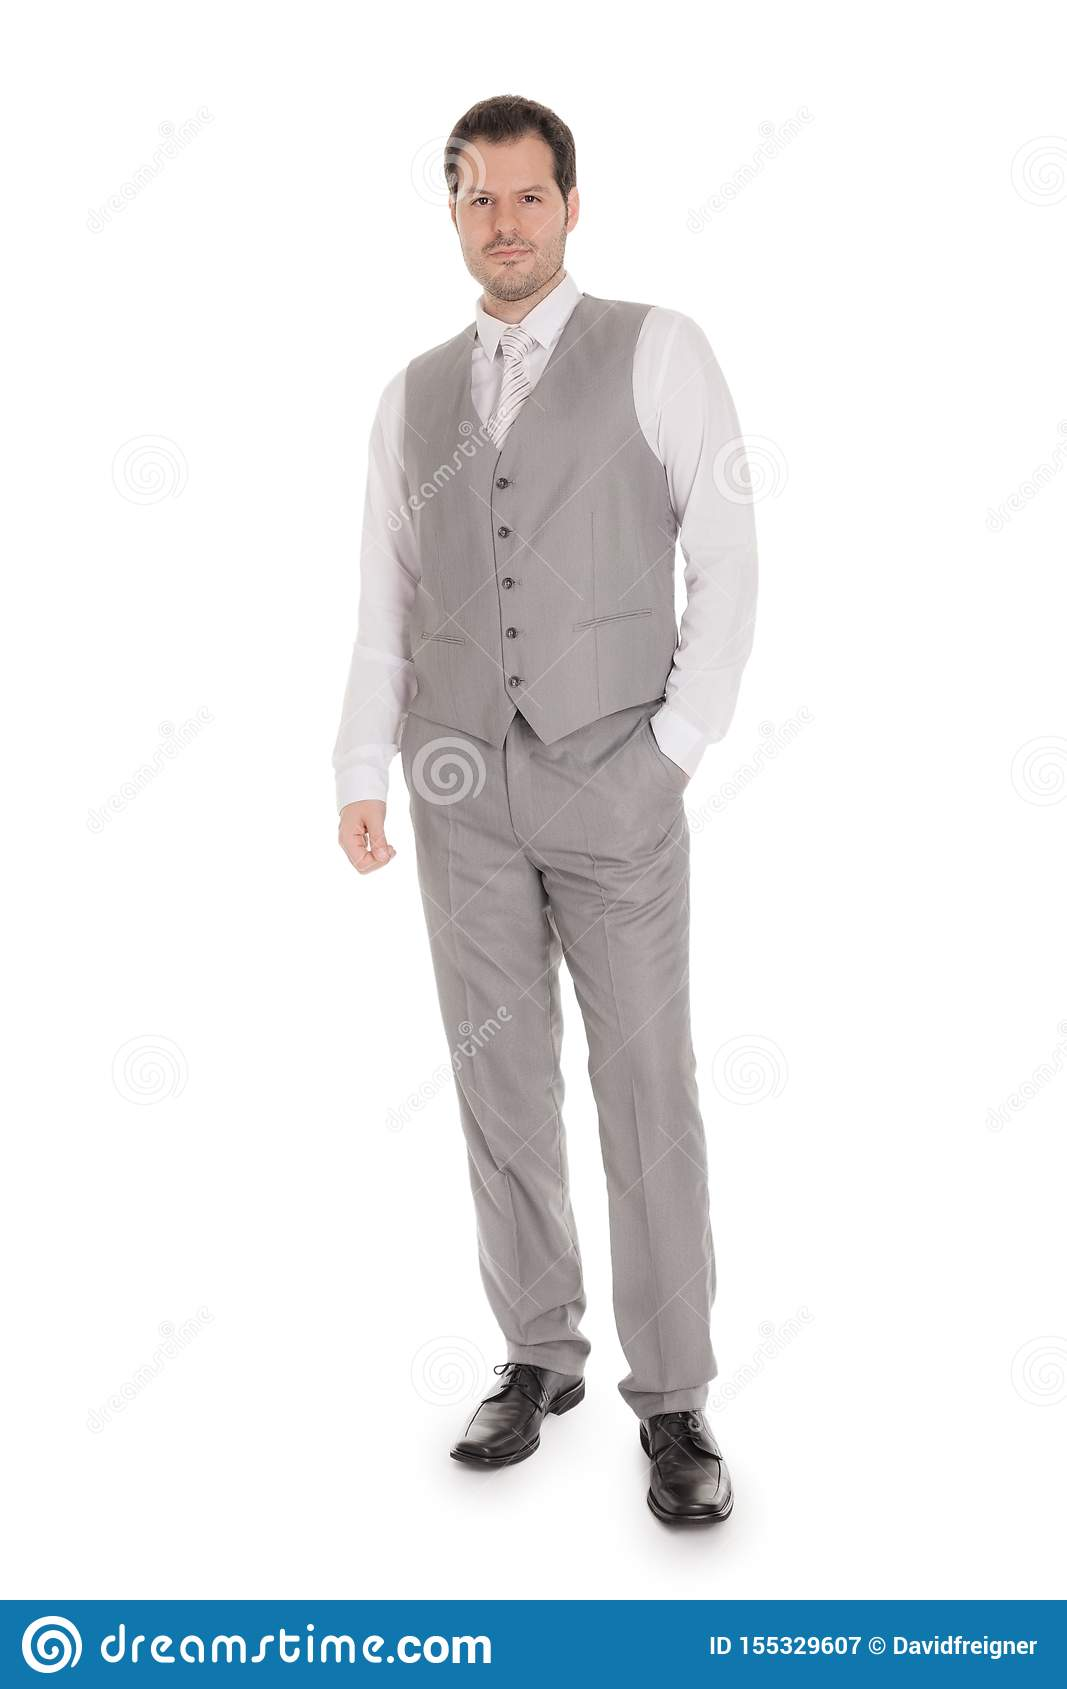 Man with bright grey suit isolated on white background. Business and wedding concept